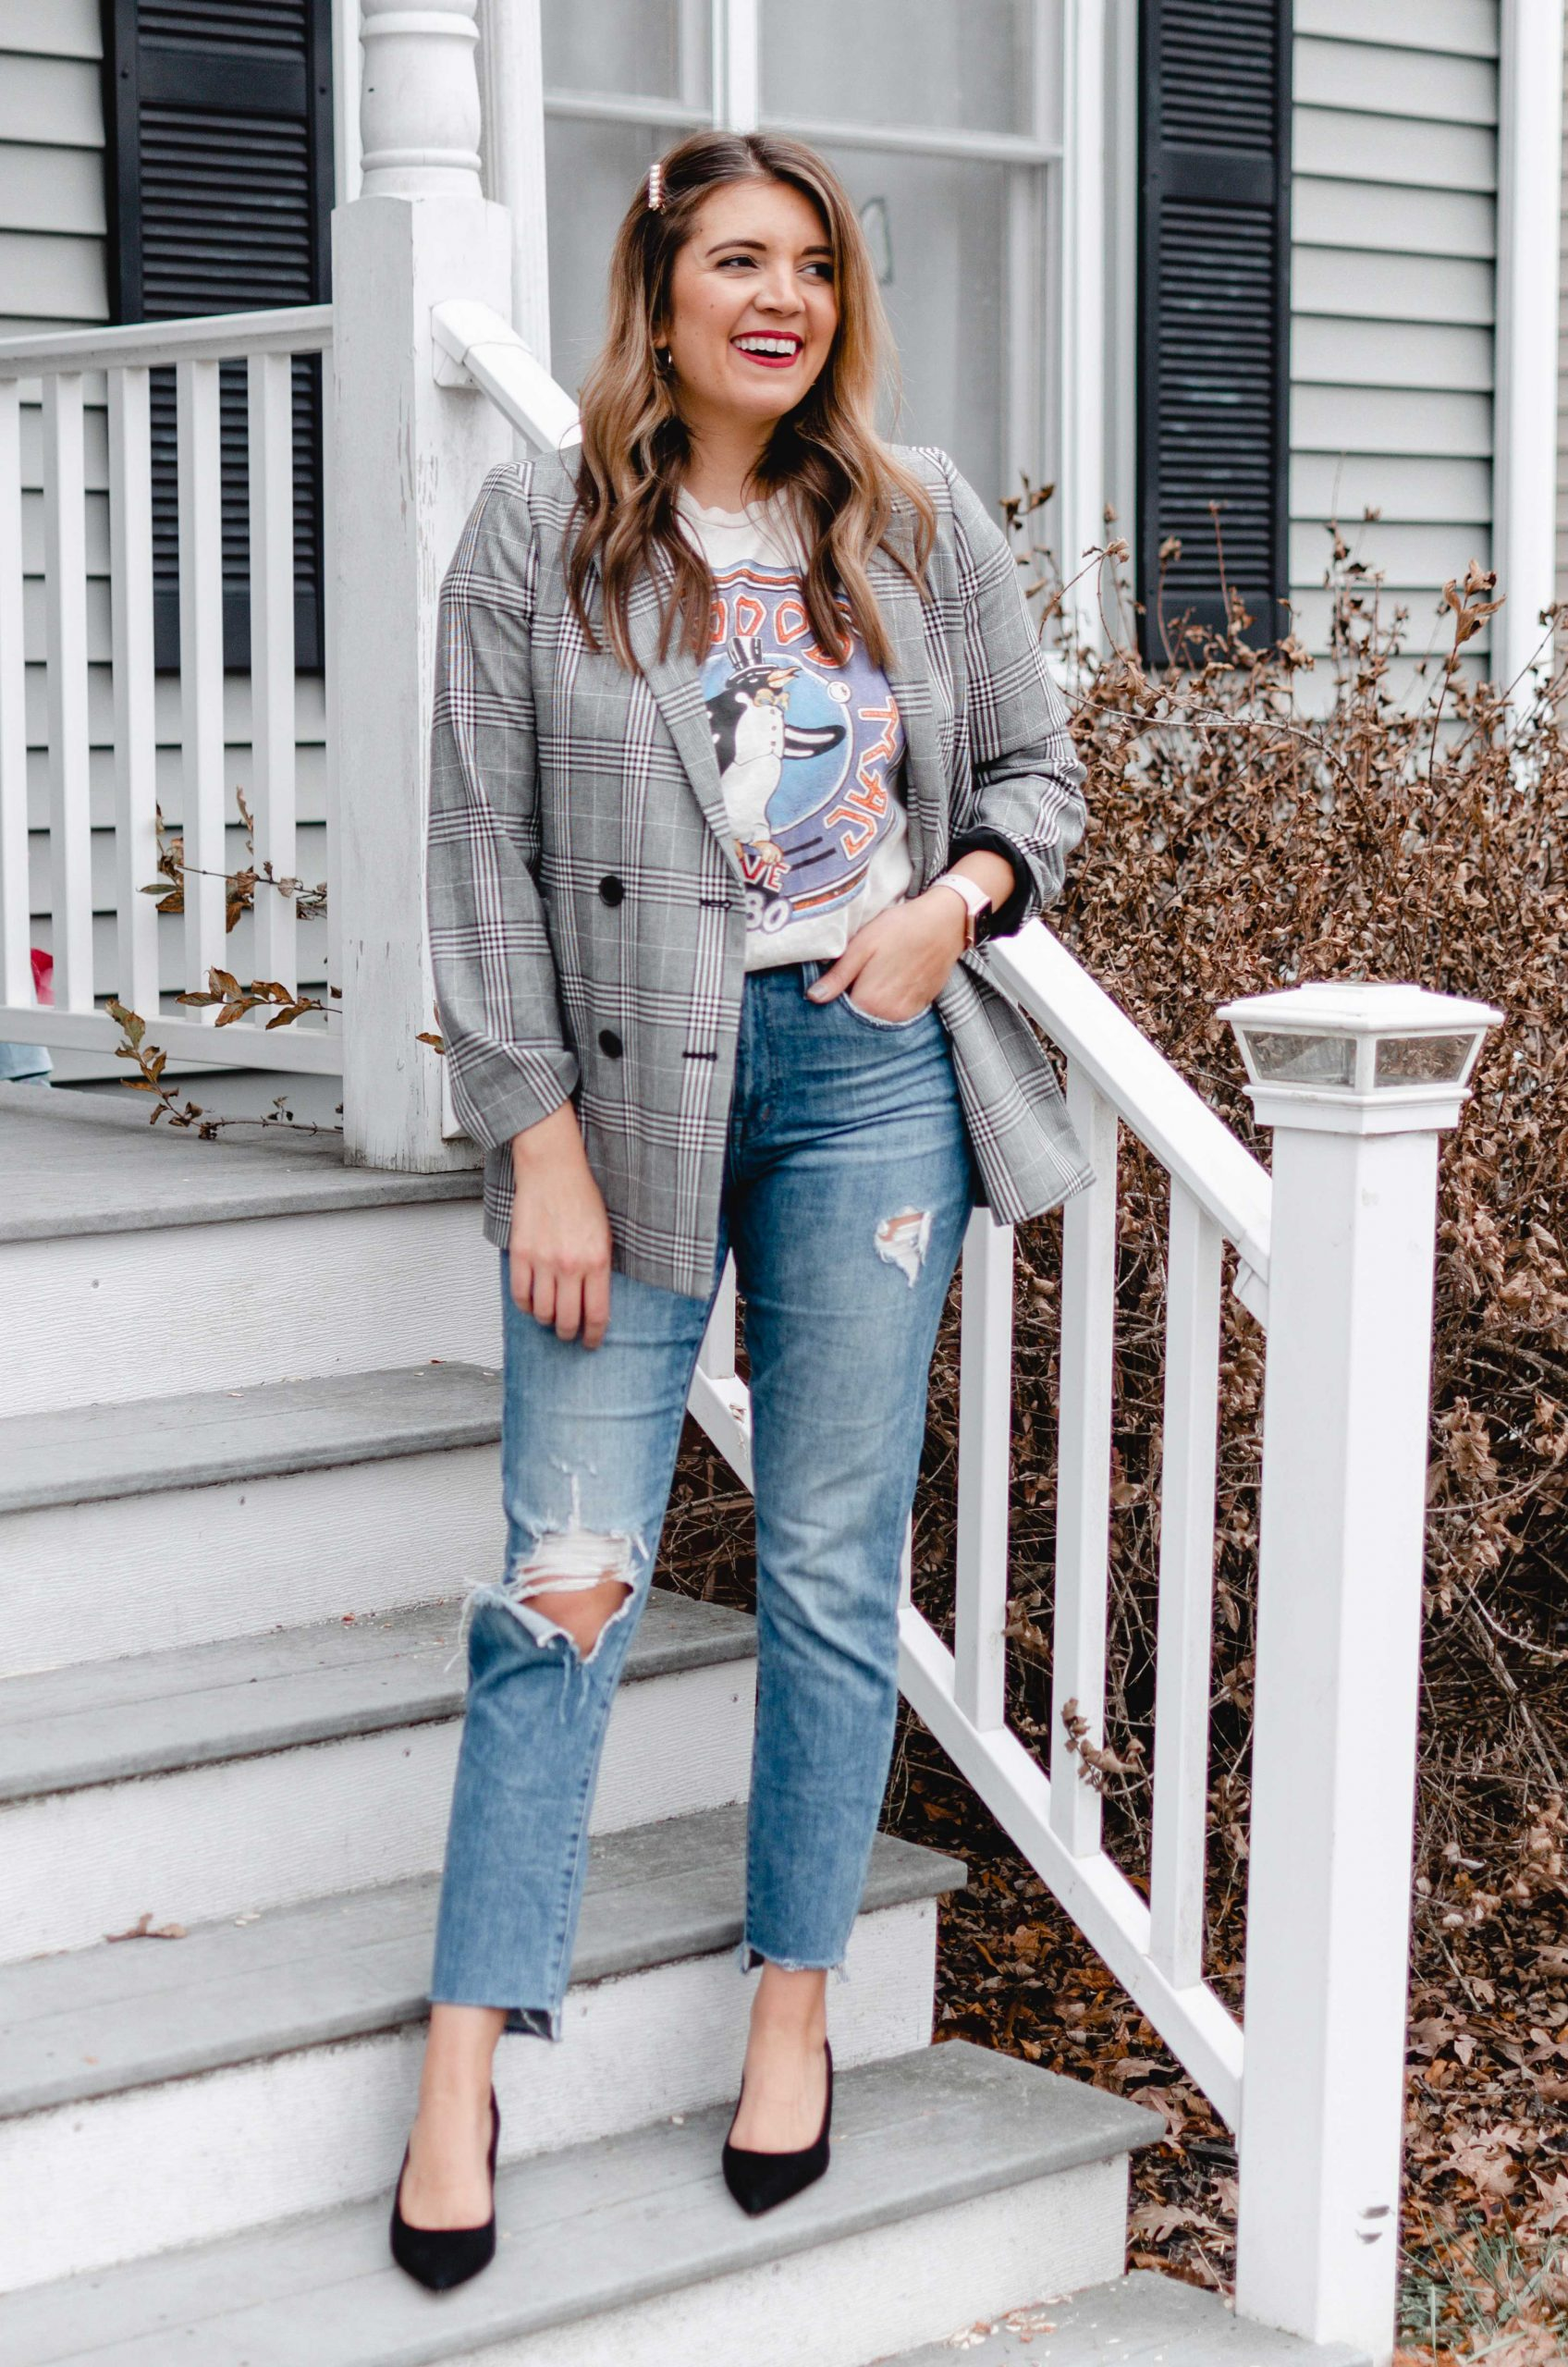 Virginia blogger, Lauren Dix, shares four winter graphic tee outfits.